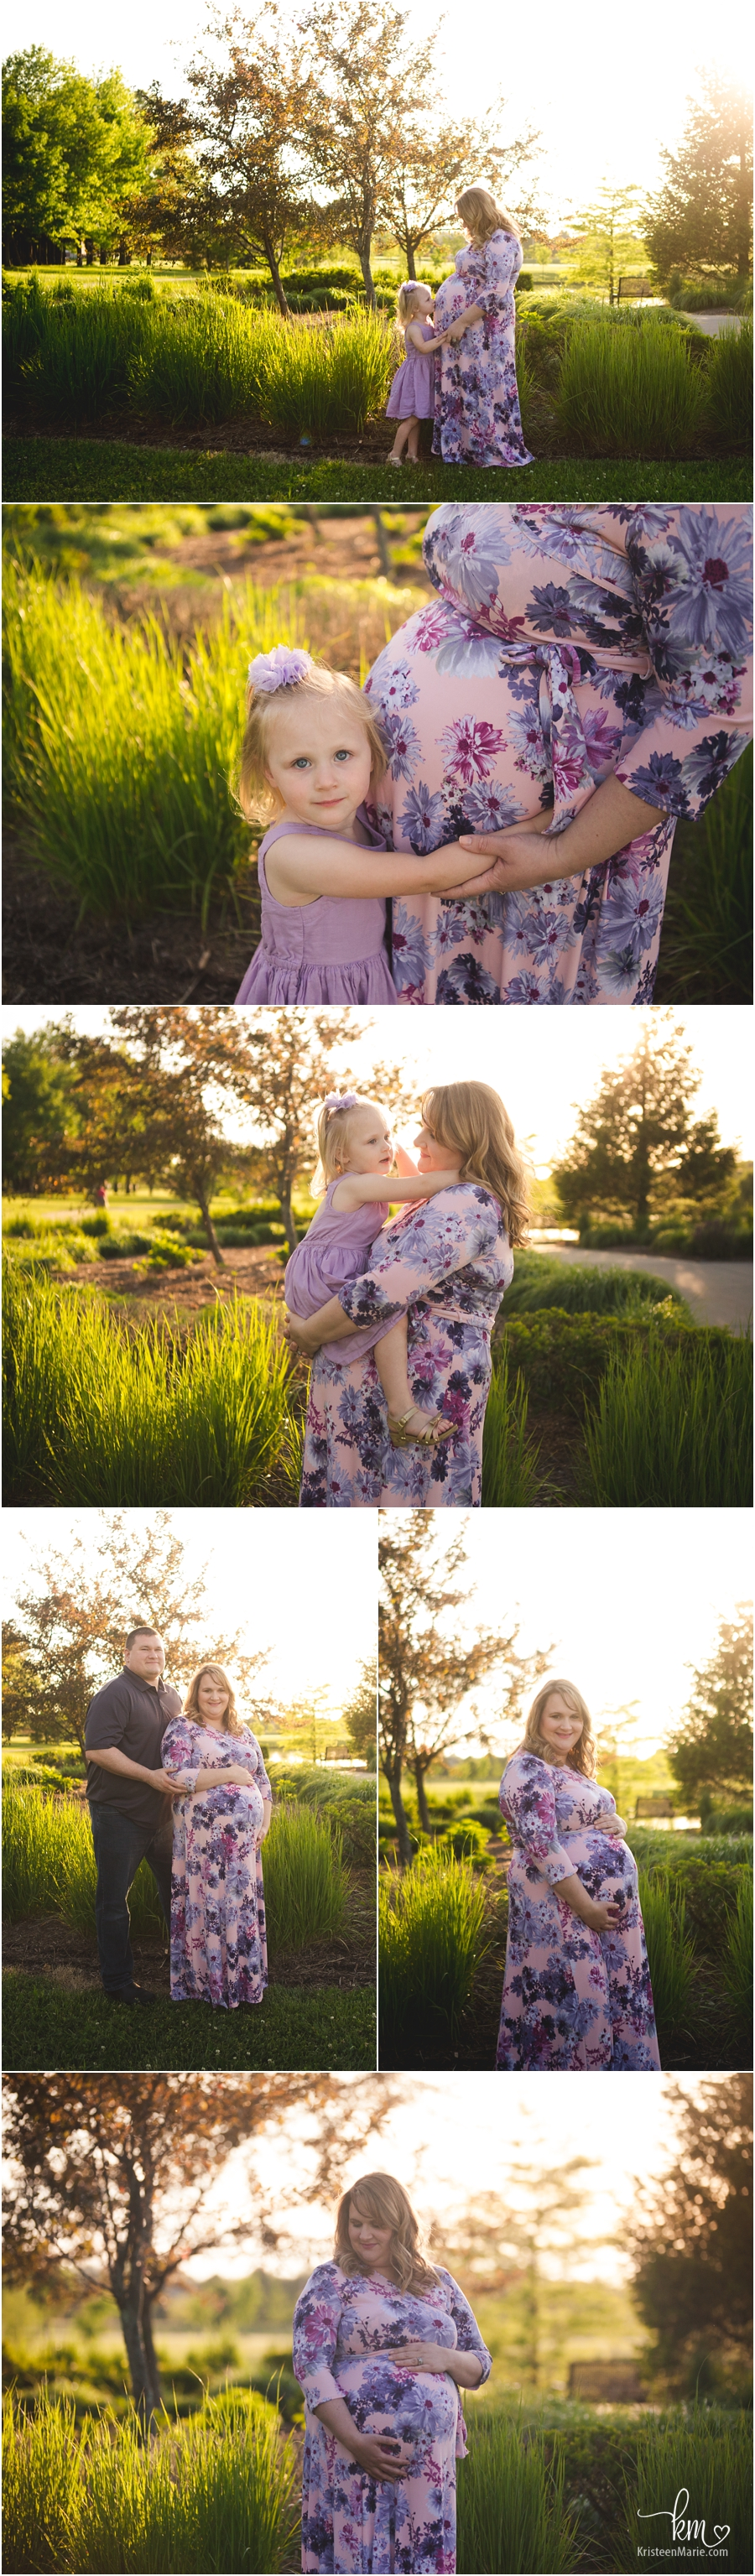 backlit sunset maternity pictures of expecting family